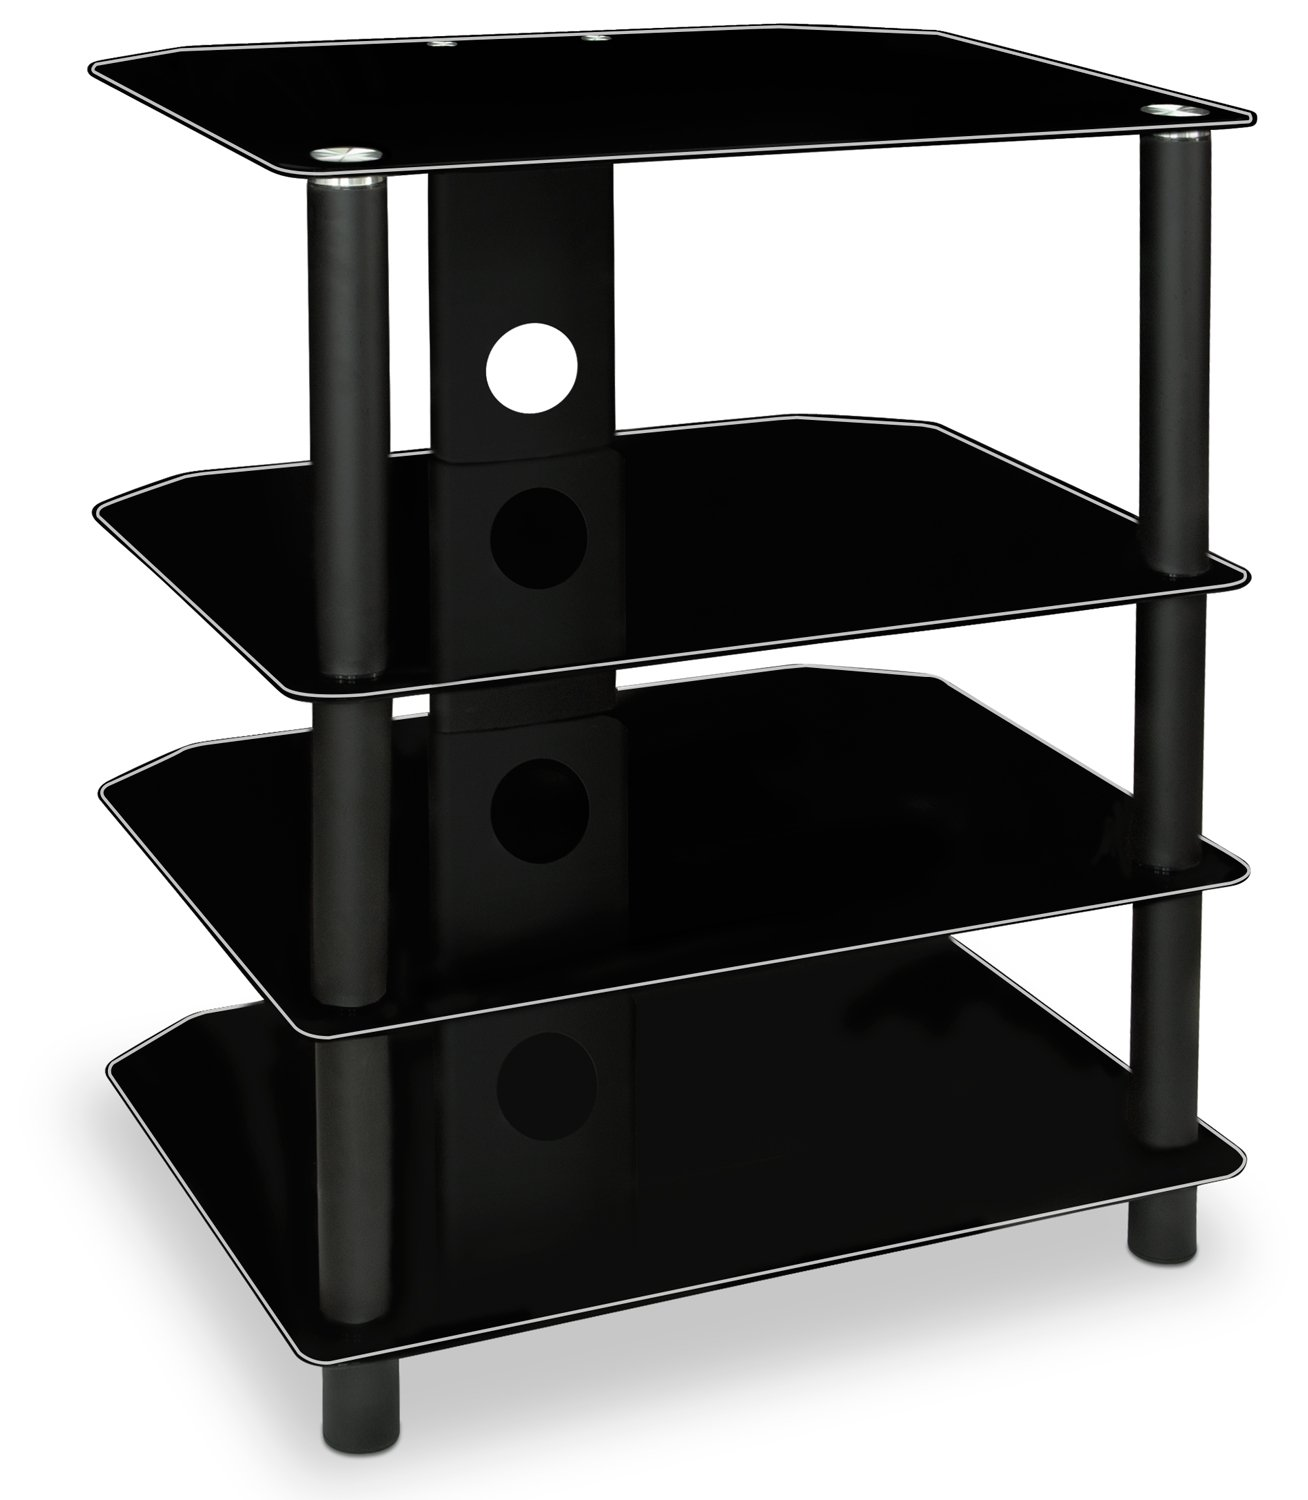 Mount-It! AV Component Media Stand, Audio Tower and Media Center with 4 Tempered Glass Shelves, 88 Lbs Capacity, Black Silk (MI-867) by Mount-It!